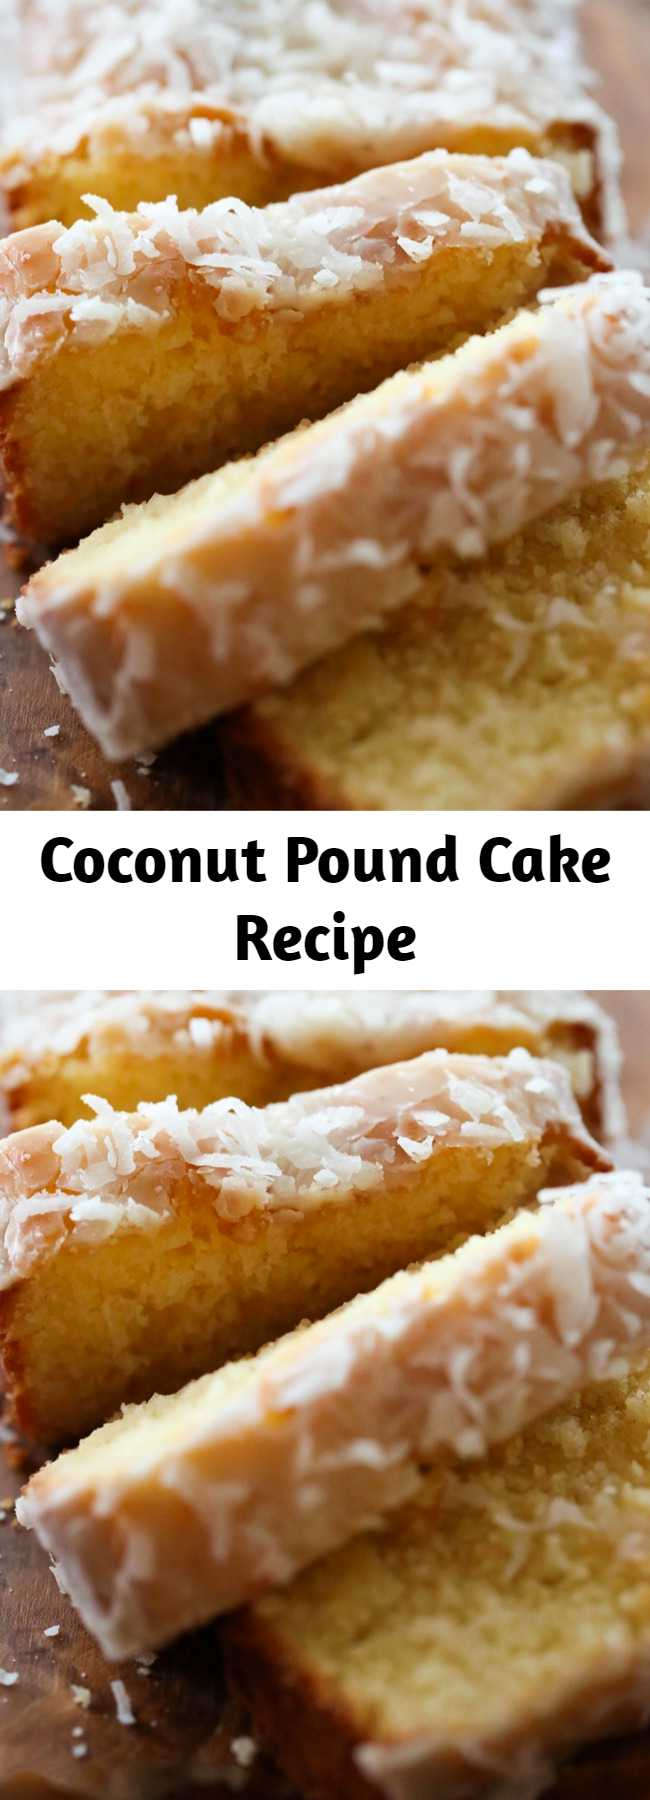 This pound cake is SO moist and so delicious! It will quickly become a new favorite!